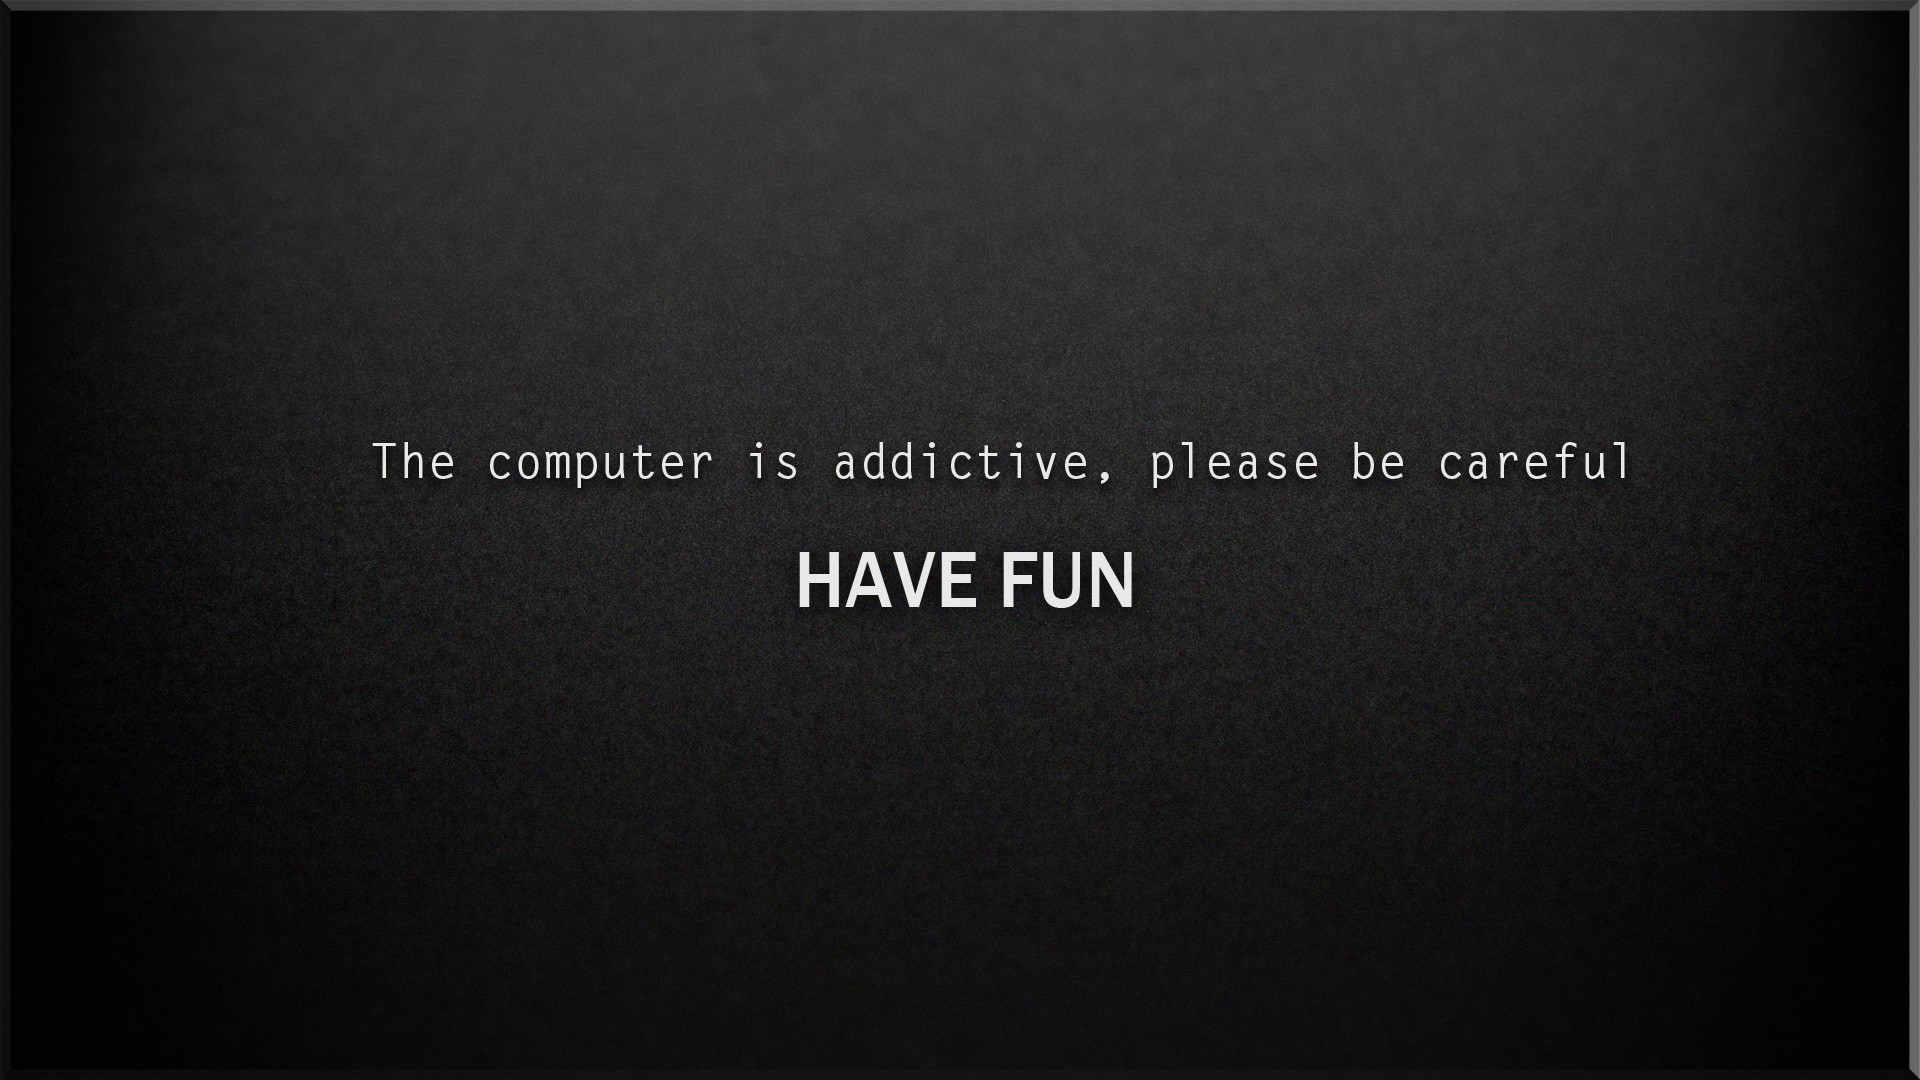 Addictive computer computer wallpapers desktop for Fun wallpaper for walls